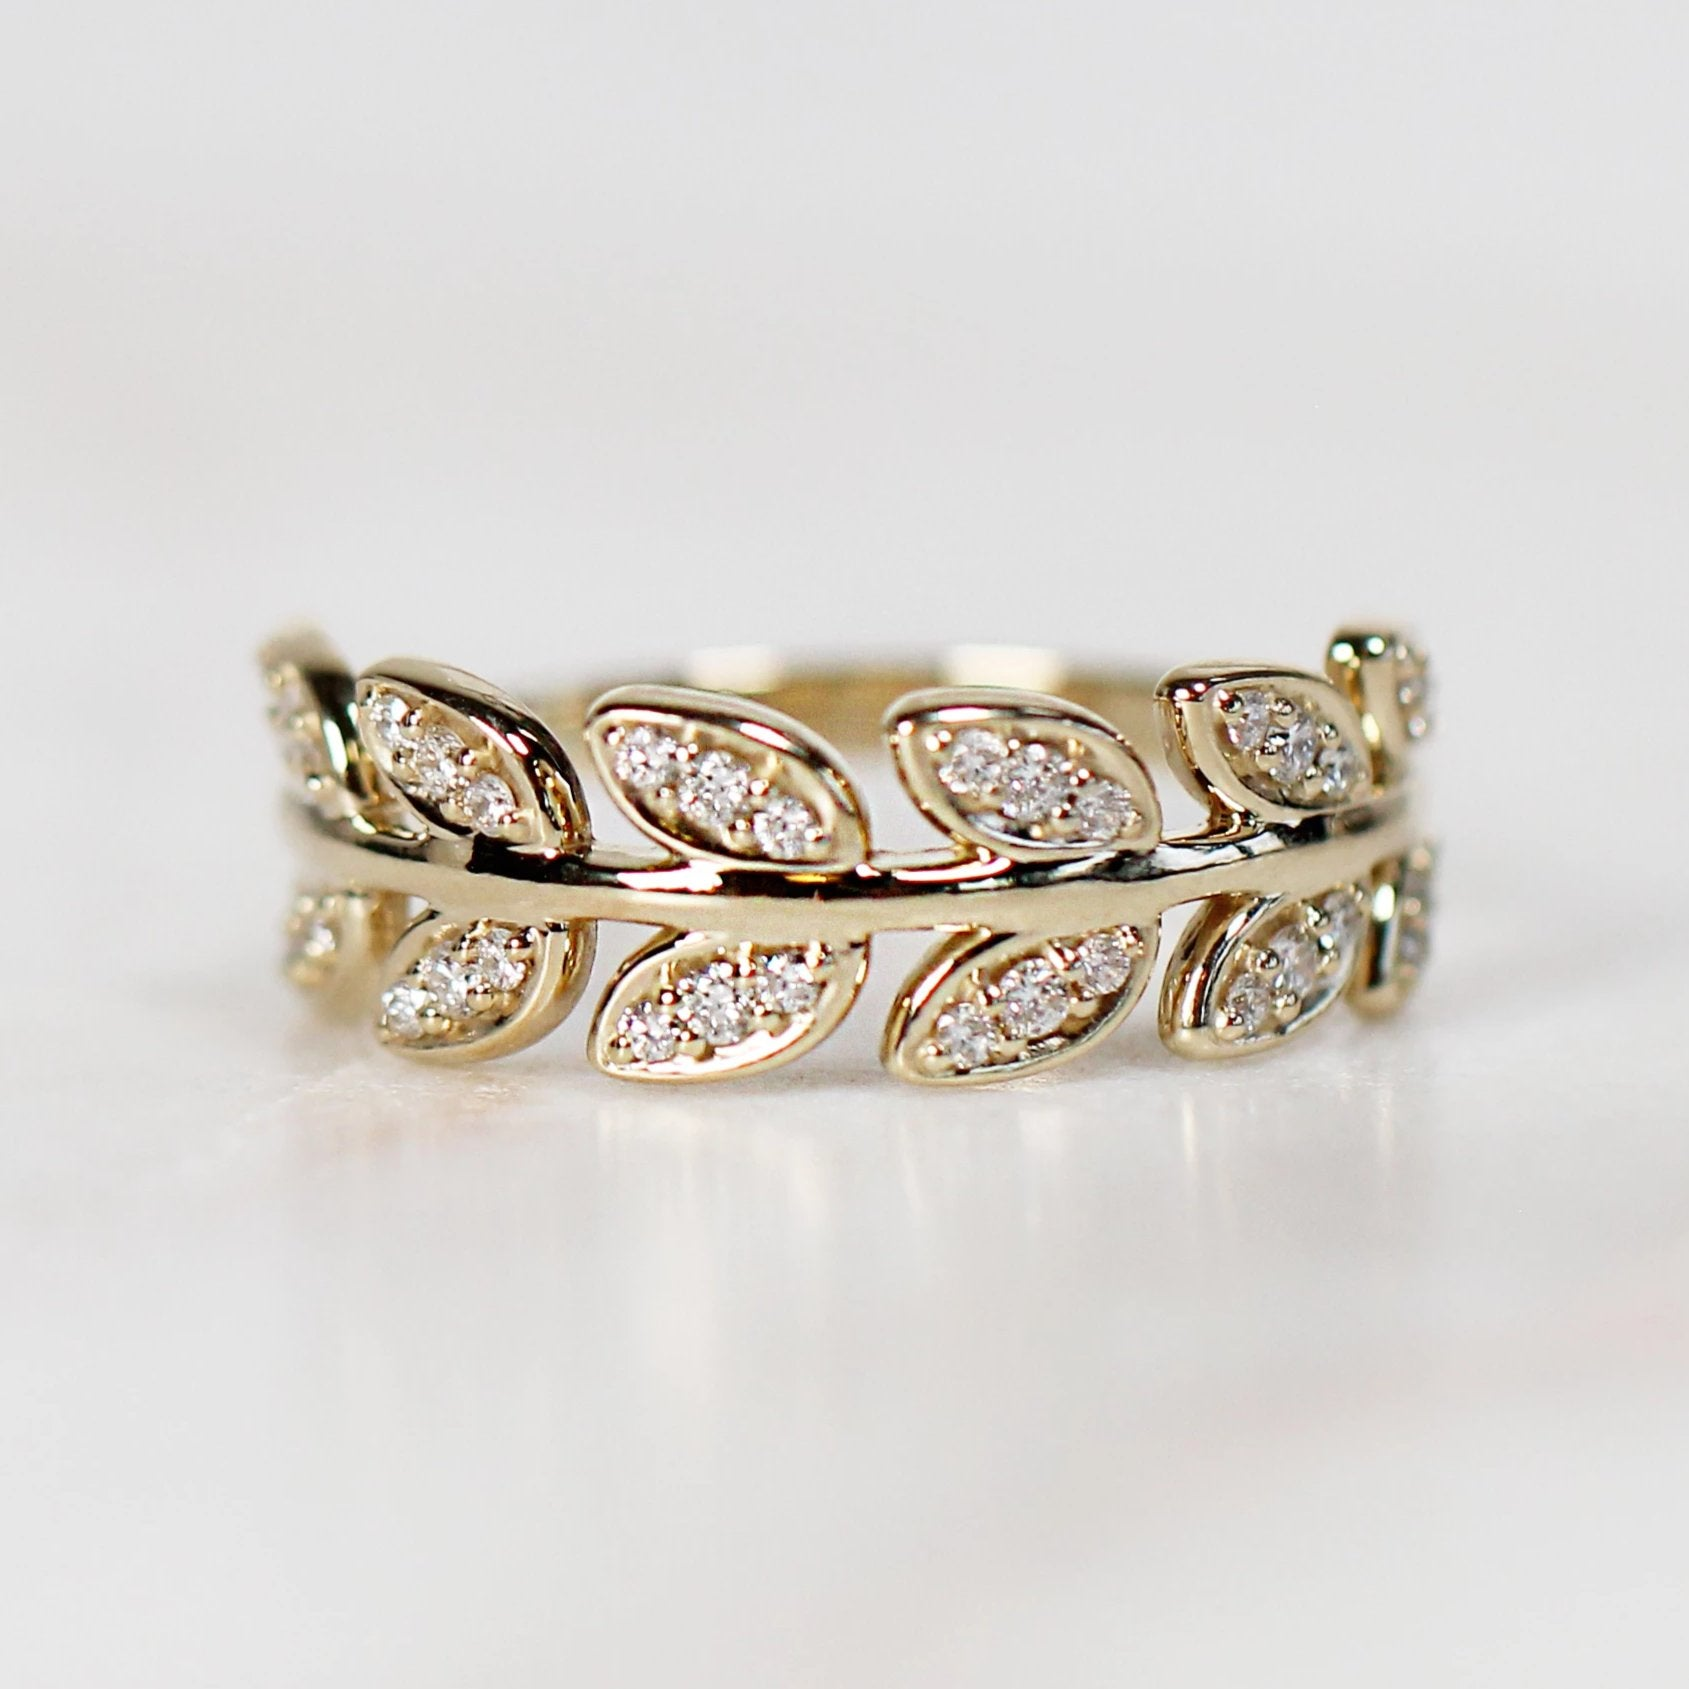 Flourish Diamond Band - Your Choice of 14k Gold - Celestial Diamonds ® by Midwinter Co.